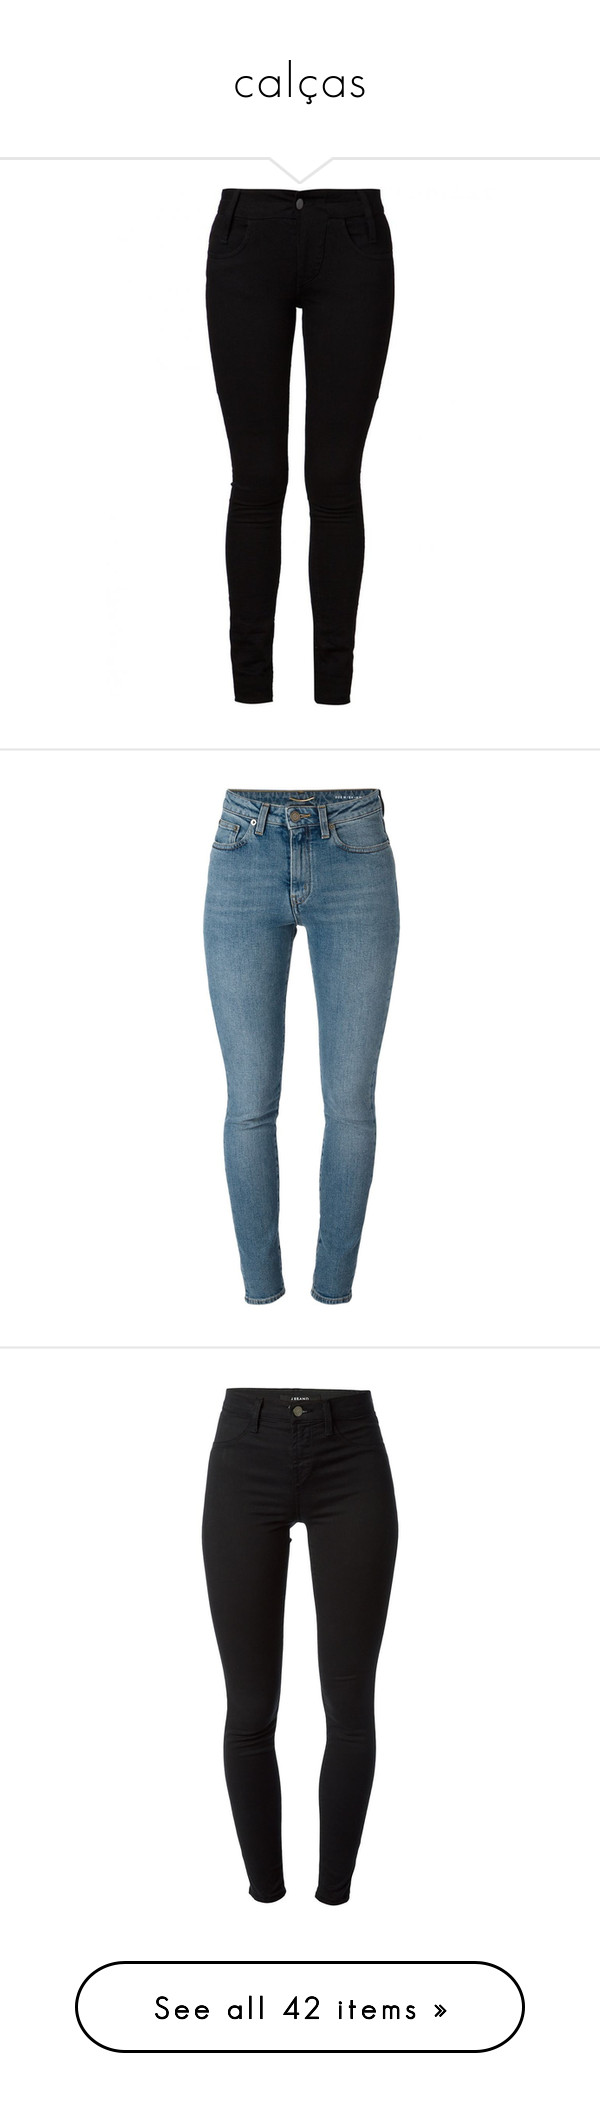 """""""calças"""" by valentina-158 ❤ liked on Polyvore featuring jeans, pants, bottoms, skinny jeans, skinny leg jeans, barbara i gongini, skinny fit jeans, cut skinny jeans, calças and saint laurent"""